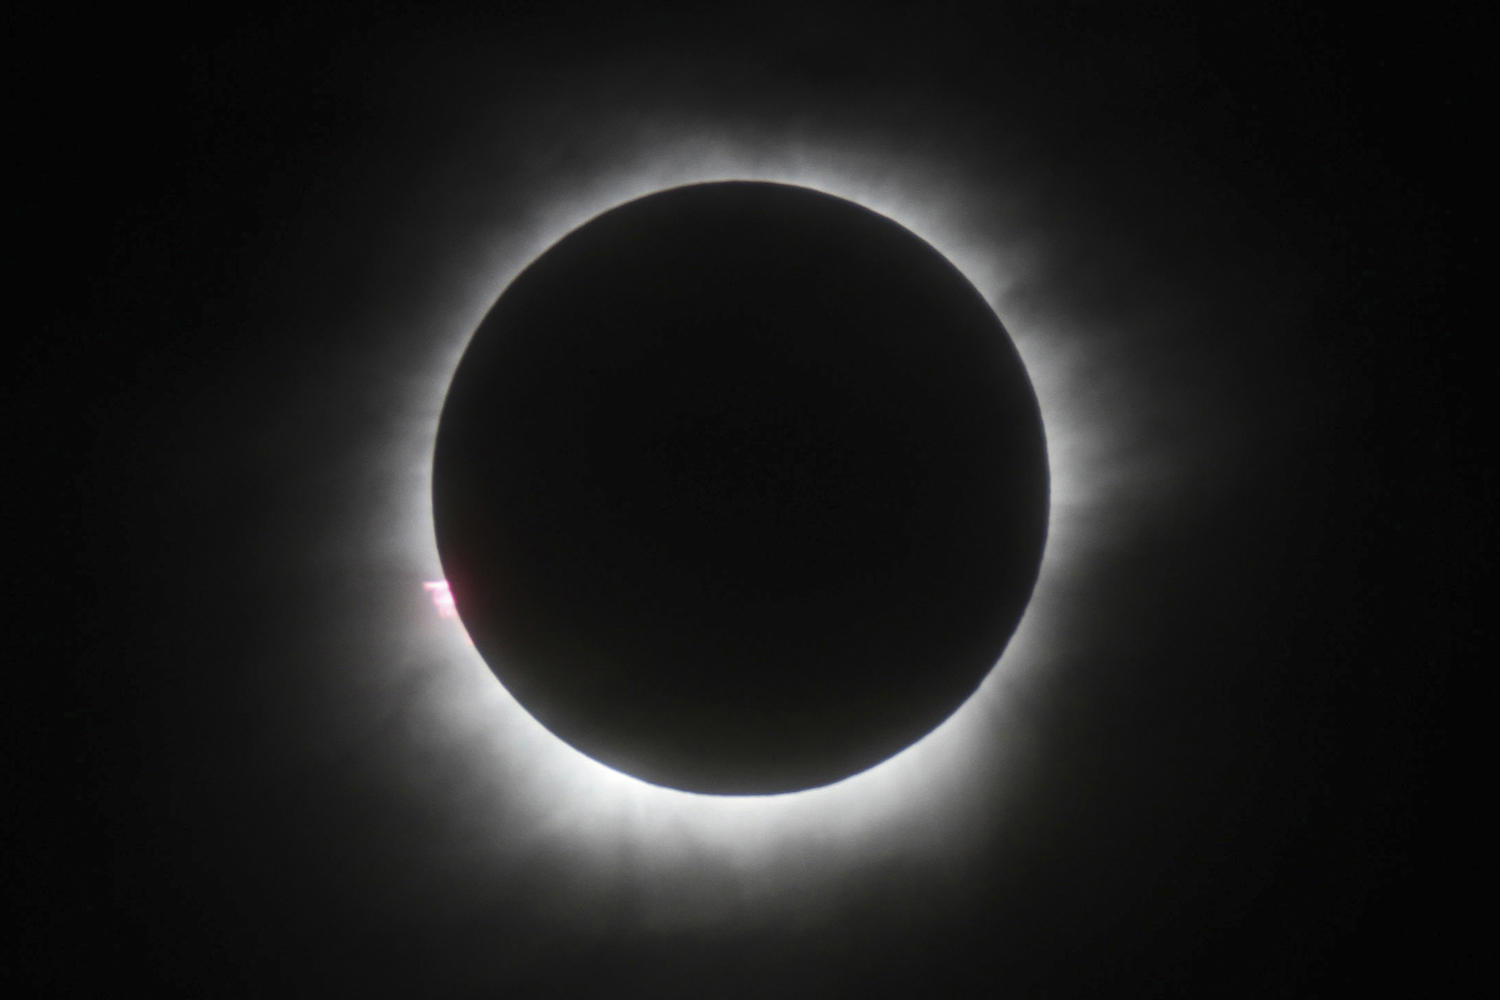 NASA will learn about climate from solar eclipse